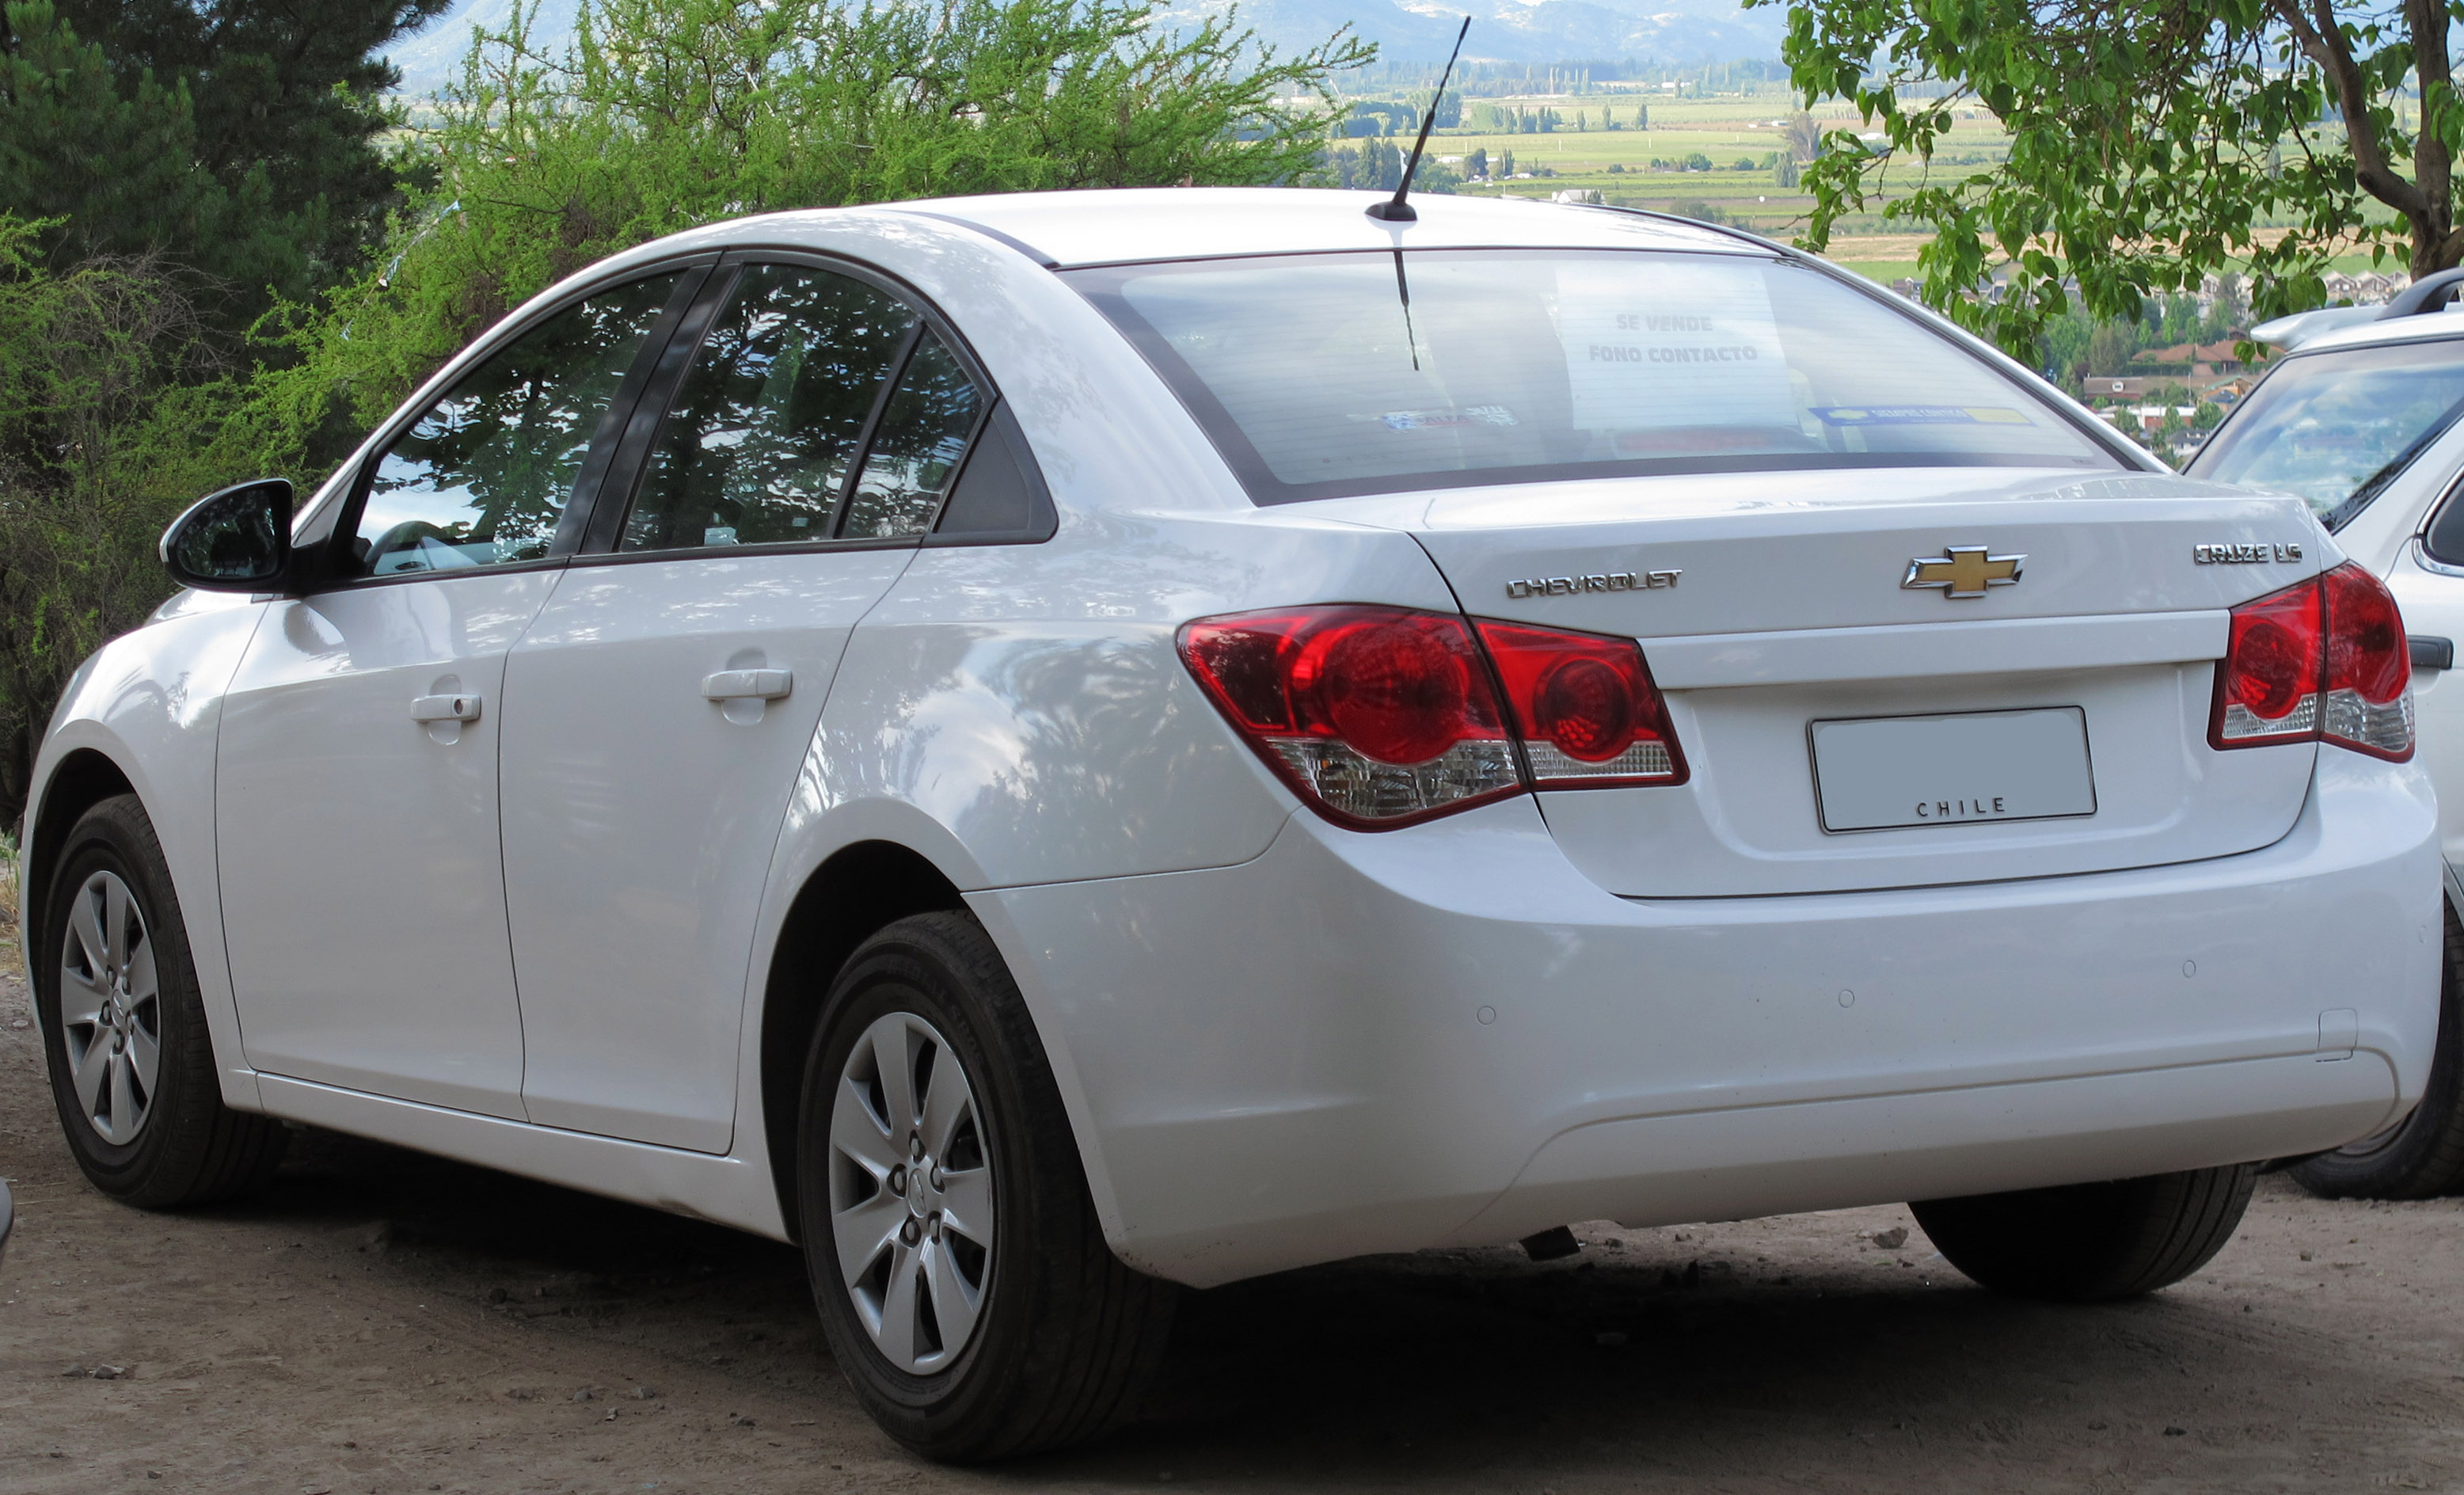 File Chevrolet Cruze 1 8 Ls 2010 15681425486 Jpg Wikimedia Commons